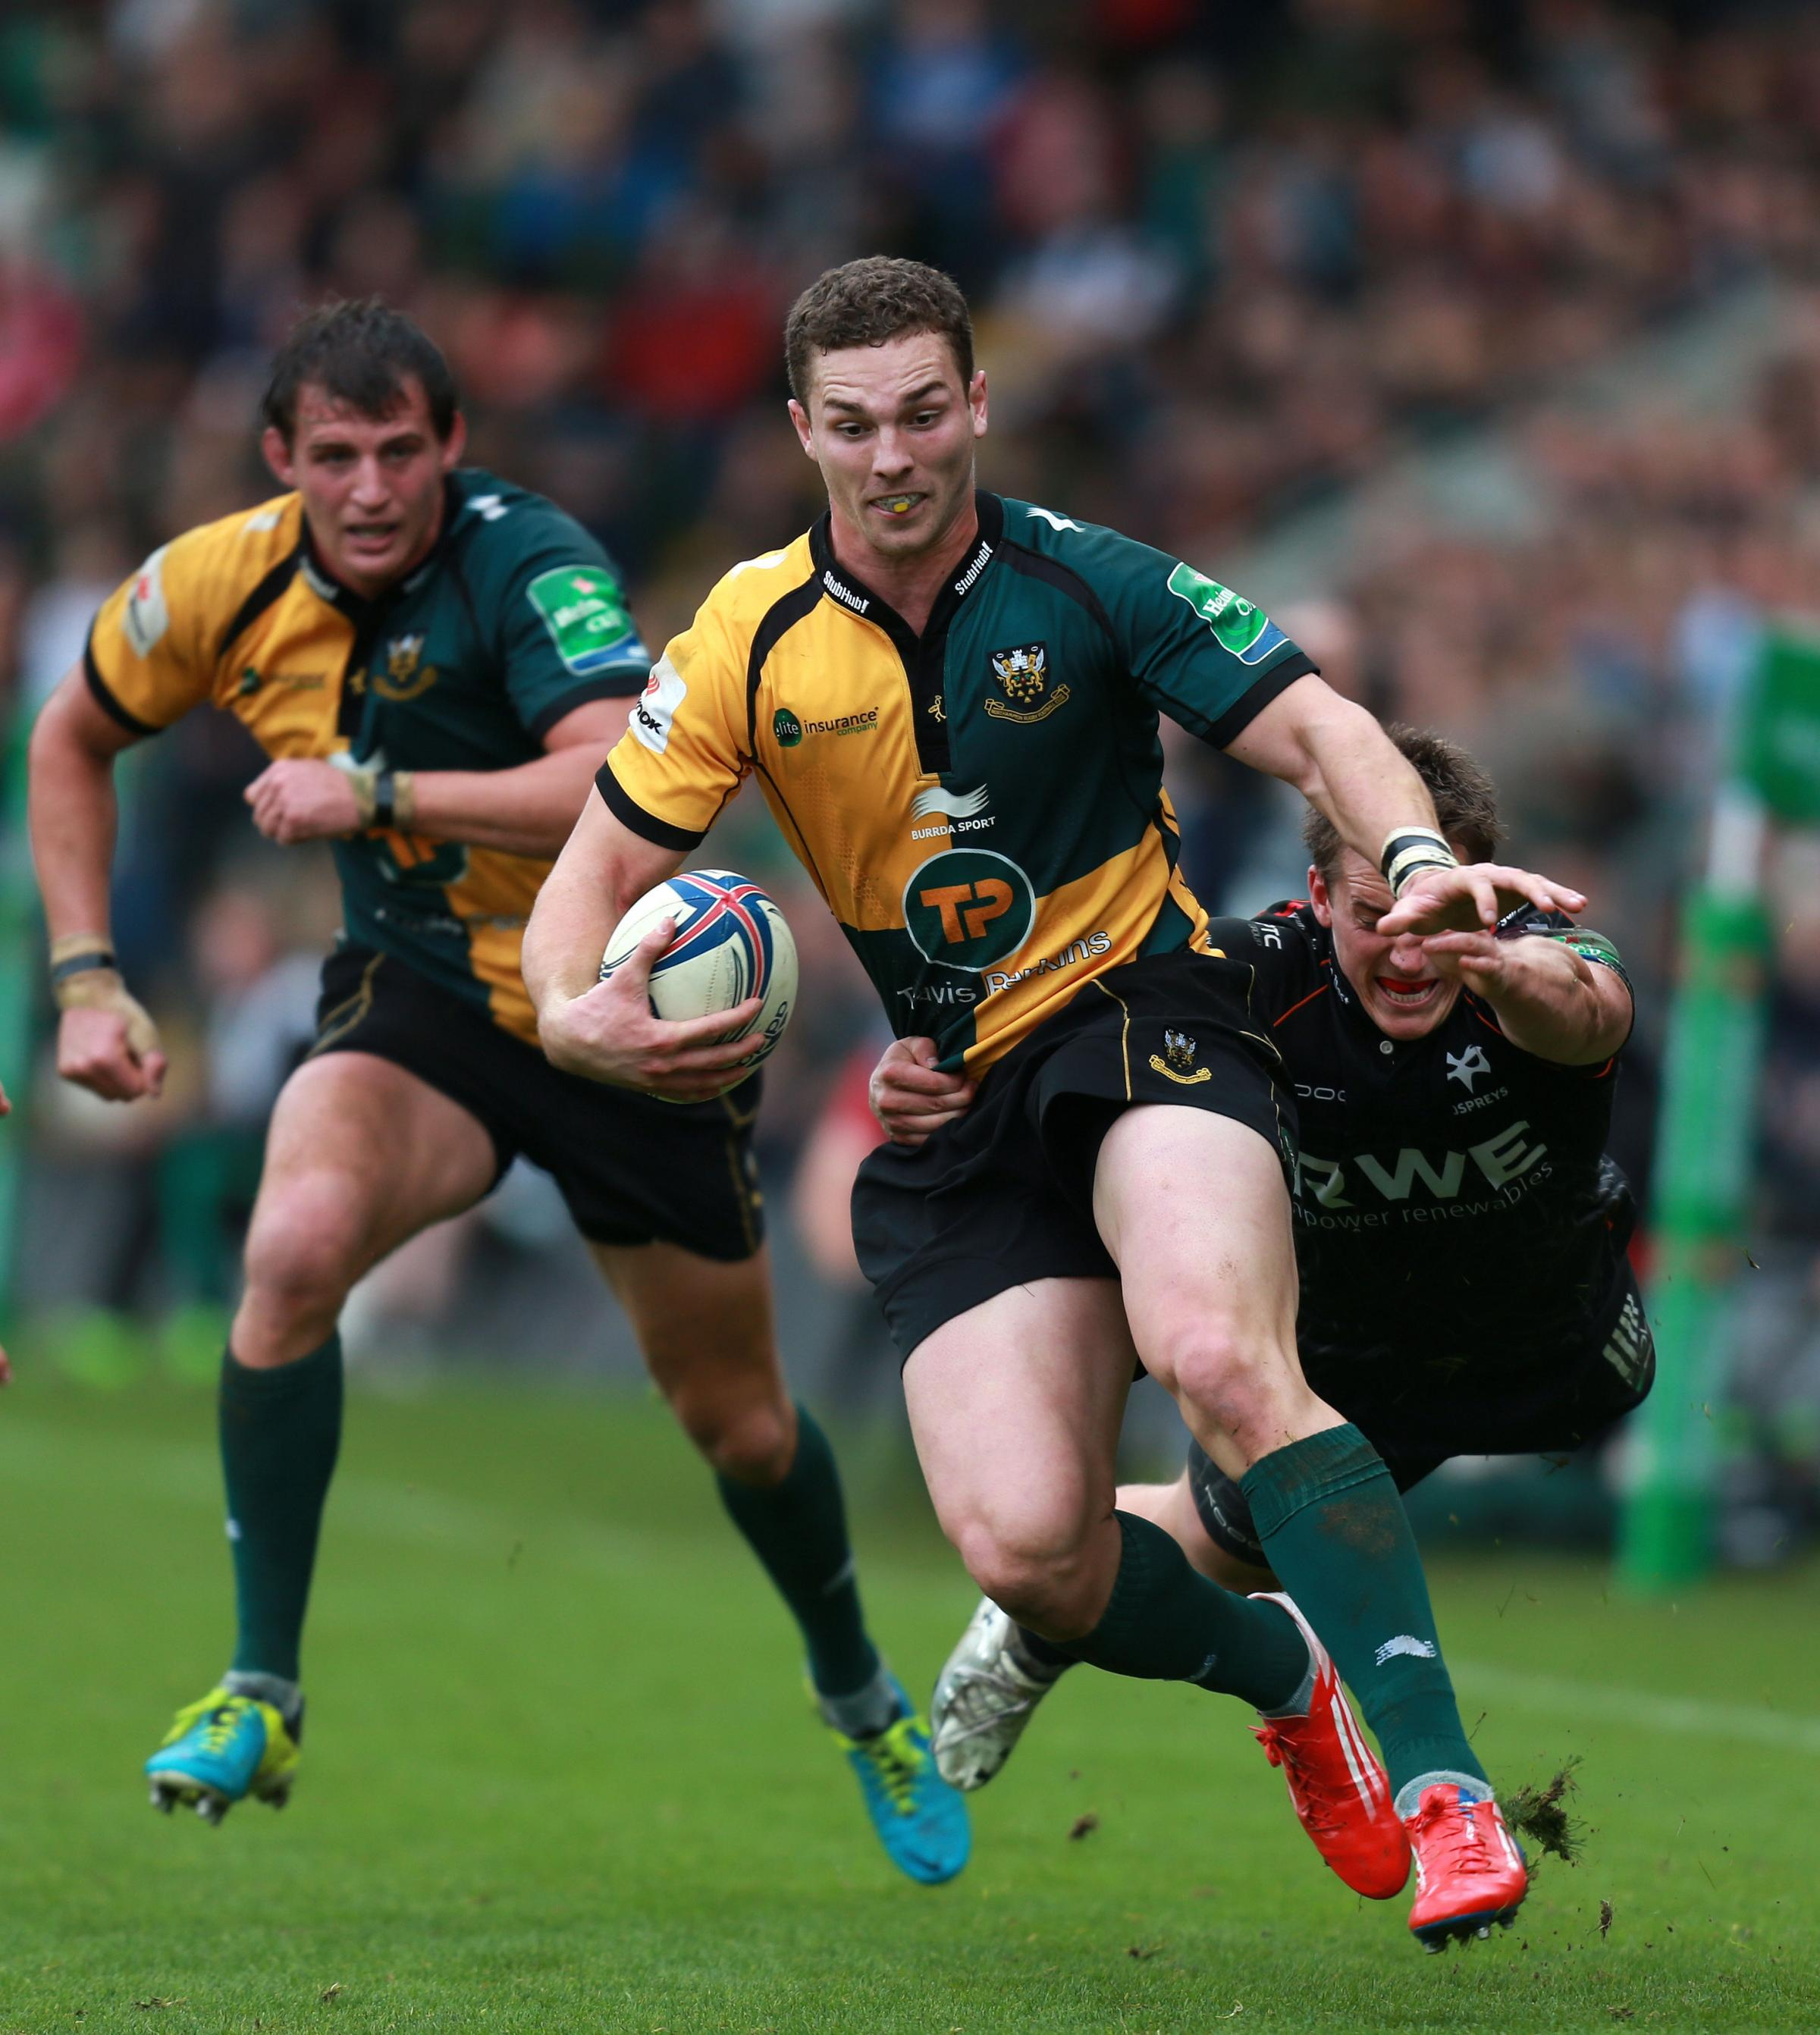 Northampton Saints George North is tackled by Ospreys Jeff Hassler during the Heineken Cup, Pool One match at Franklins Gardens, Northampton. PRESS ASSOCIATION Photo. Picture date: Sunday October 20, 2013. See PA story RUGBYU Northampton. Photo credit sho